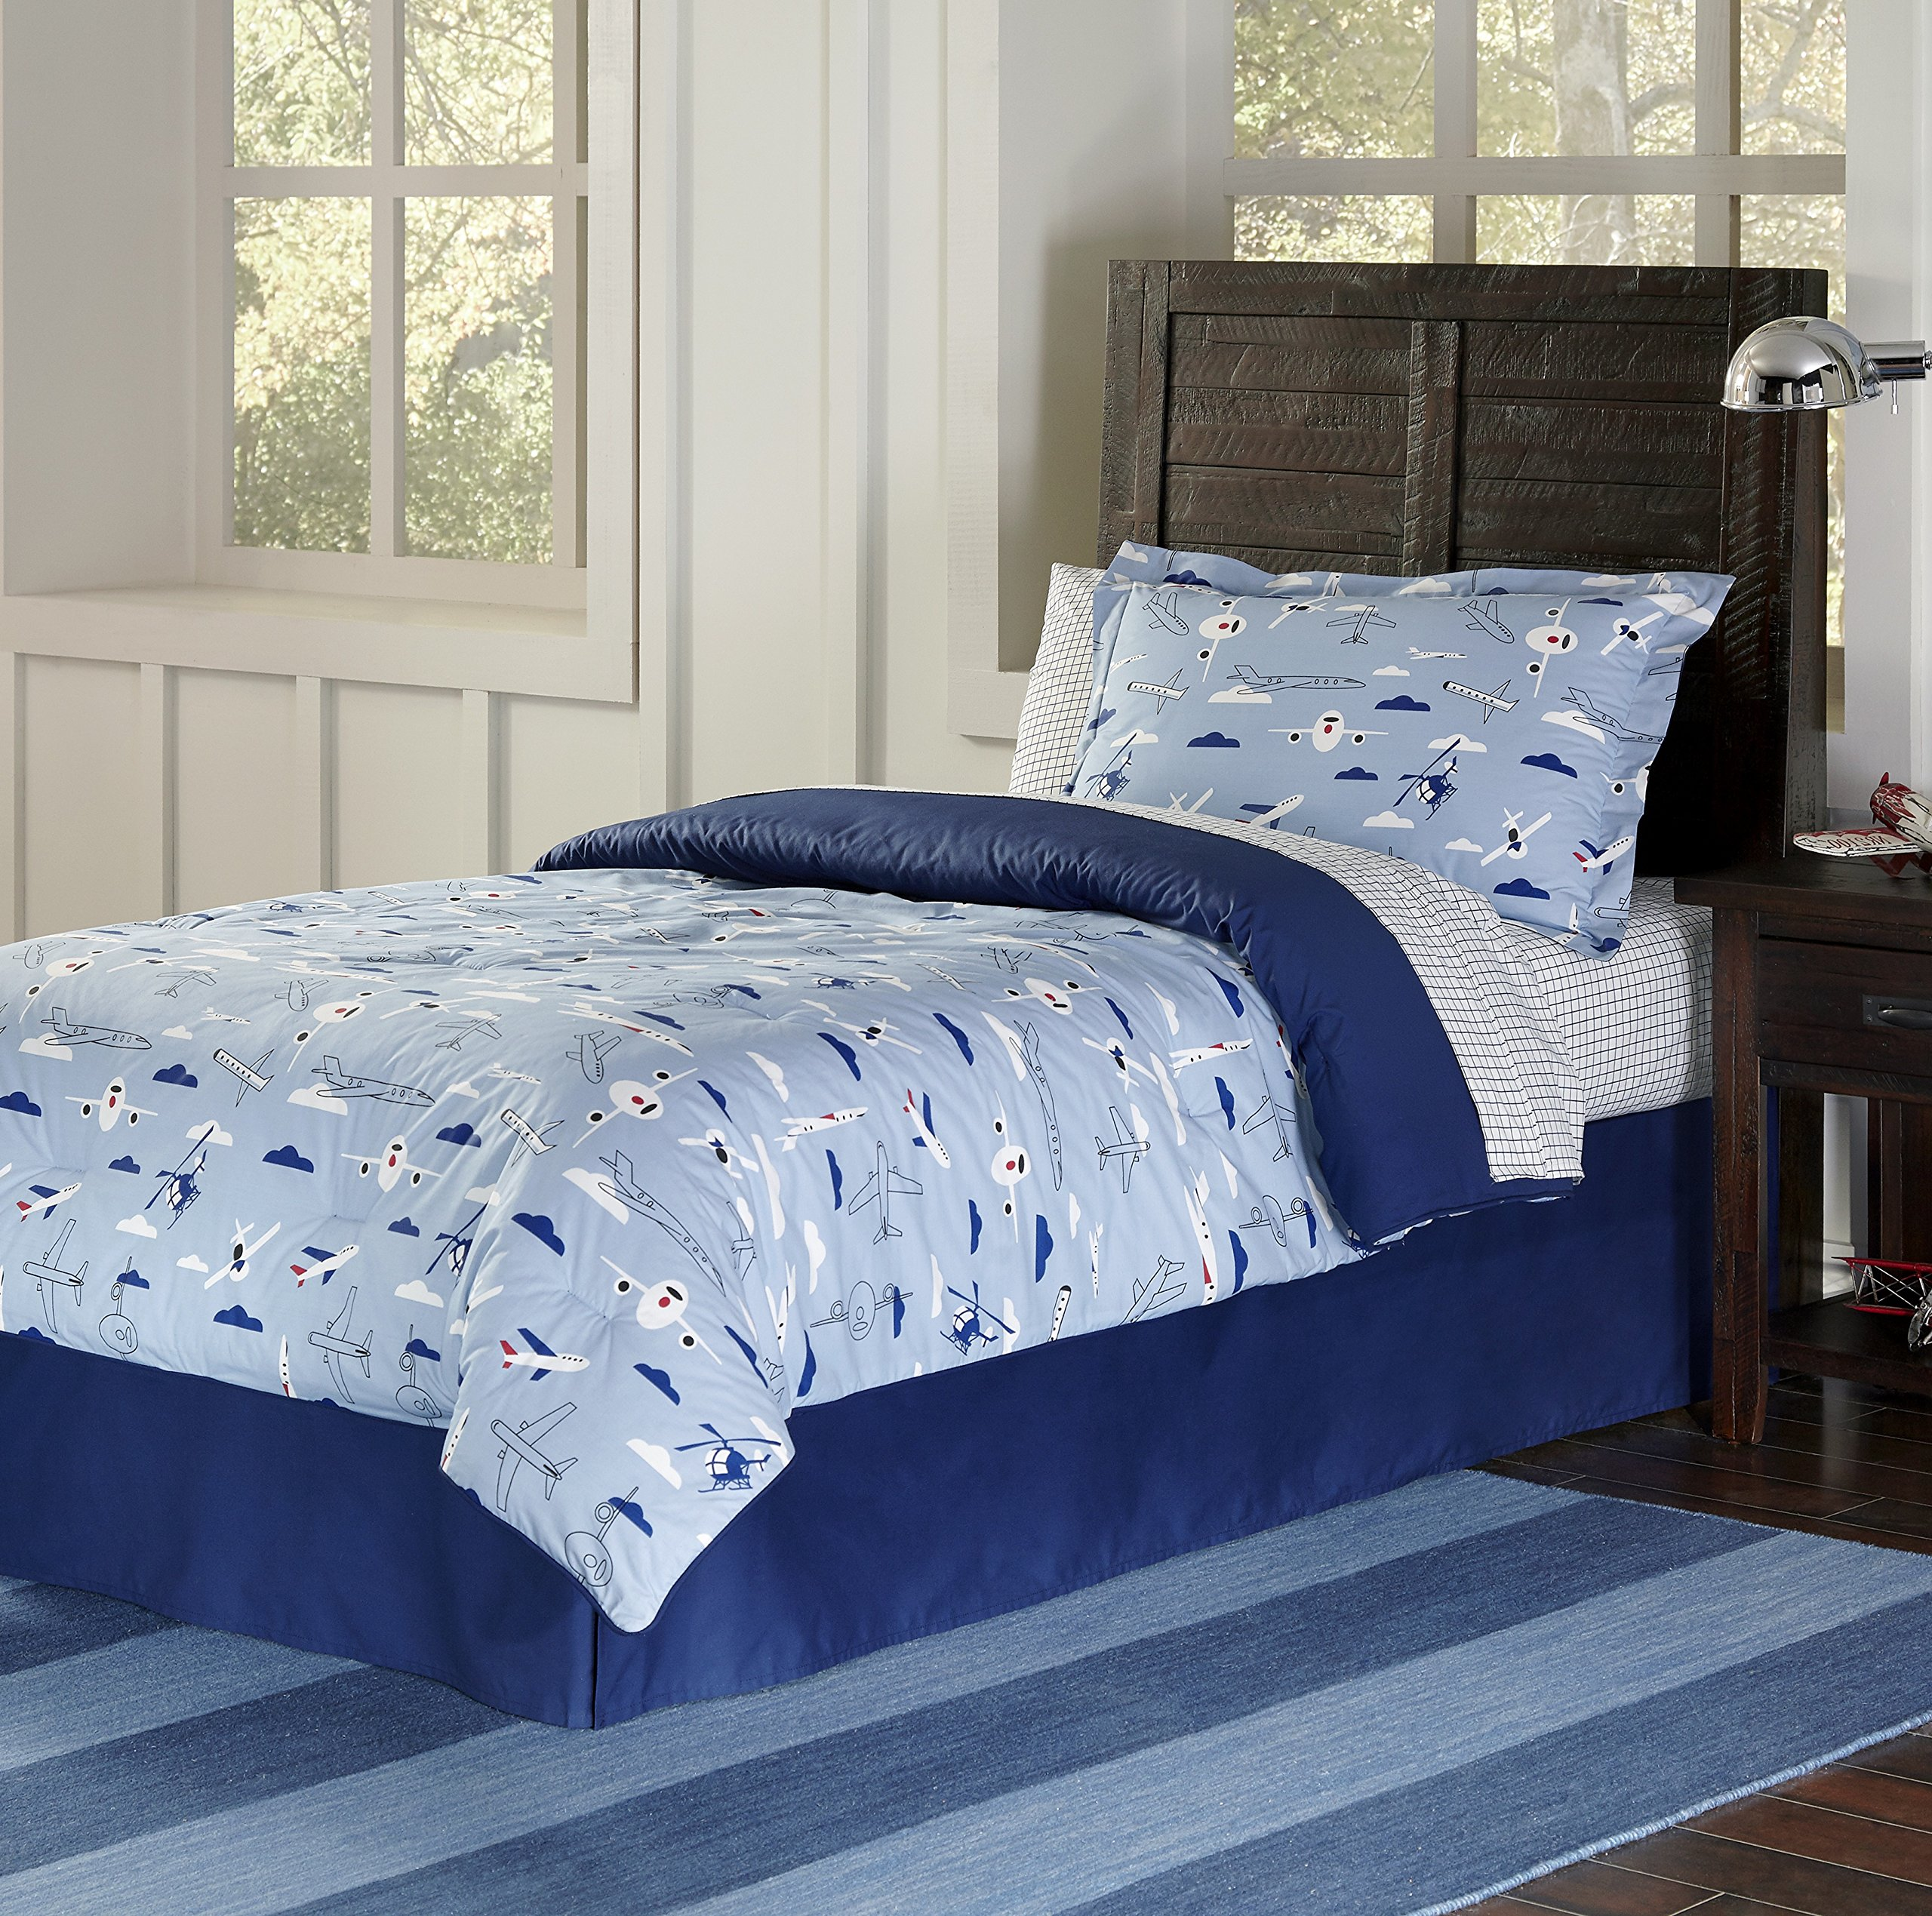 3 Piece Boys Sky Blue Airplane Duvet Full Queen Set, Cute All Over Could Air Planes Bedding, Multi Clouds Helicopor Jet Plane Themed, Passenger Jumbo Jets Pattern, Navy White Red